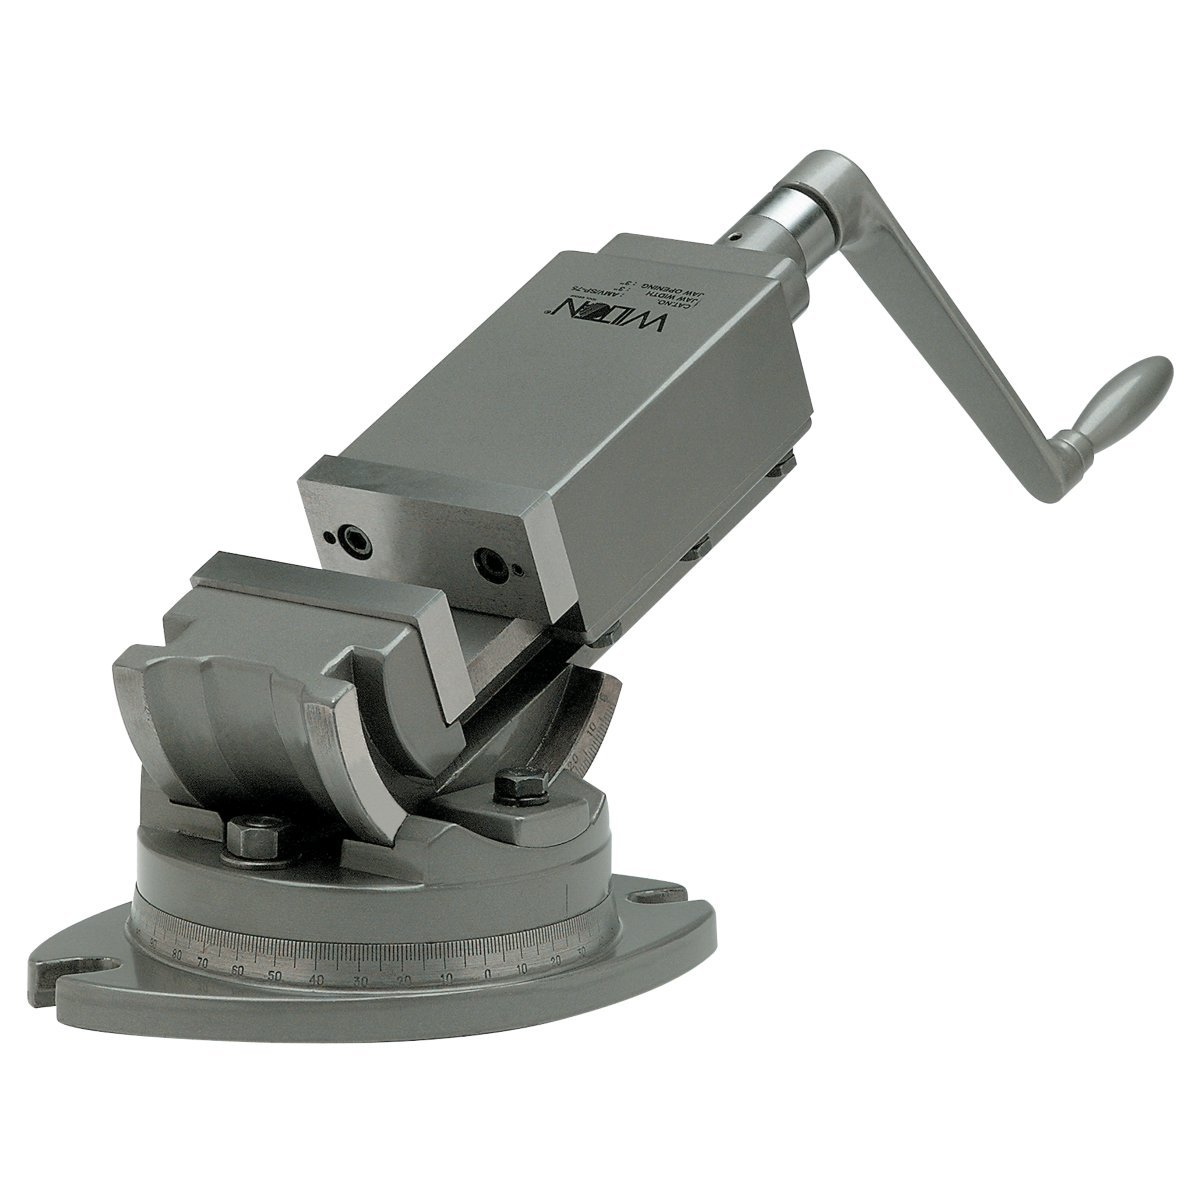 Wilton 11705 2-Axis Precision Angular Vise 4-Inch Jaw Width, 1-1/2-Inch Jaw Depth